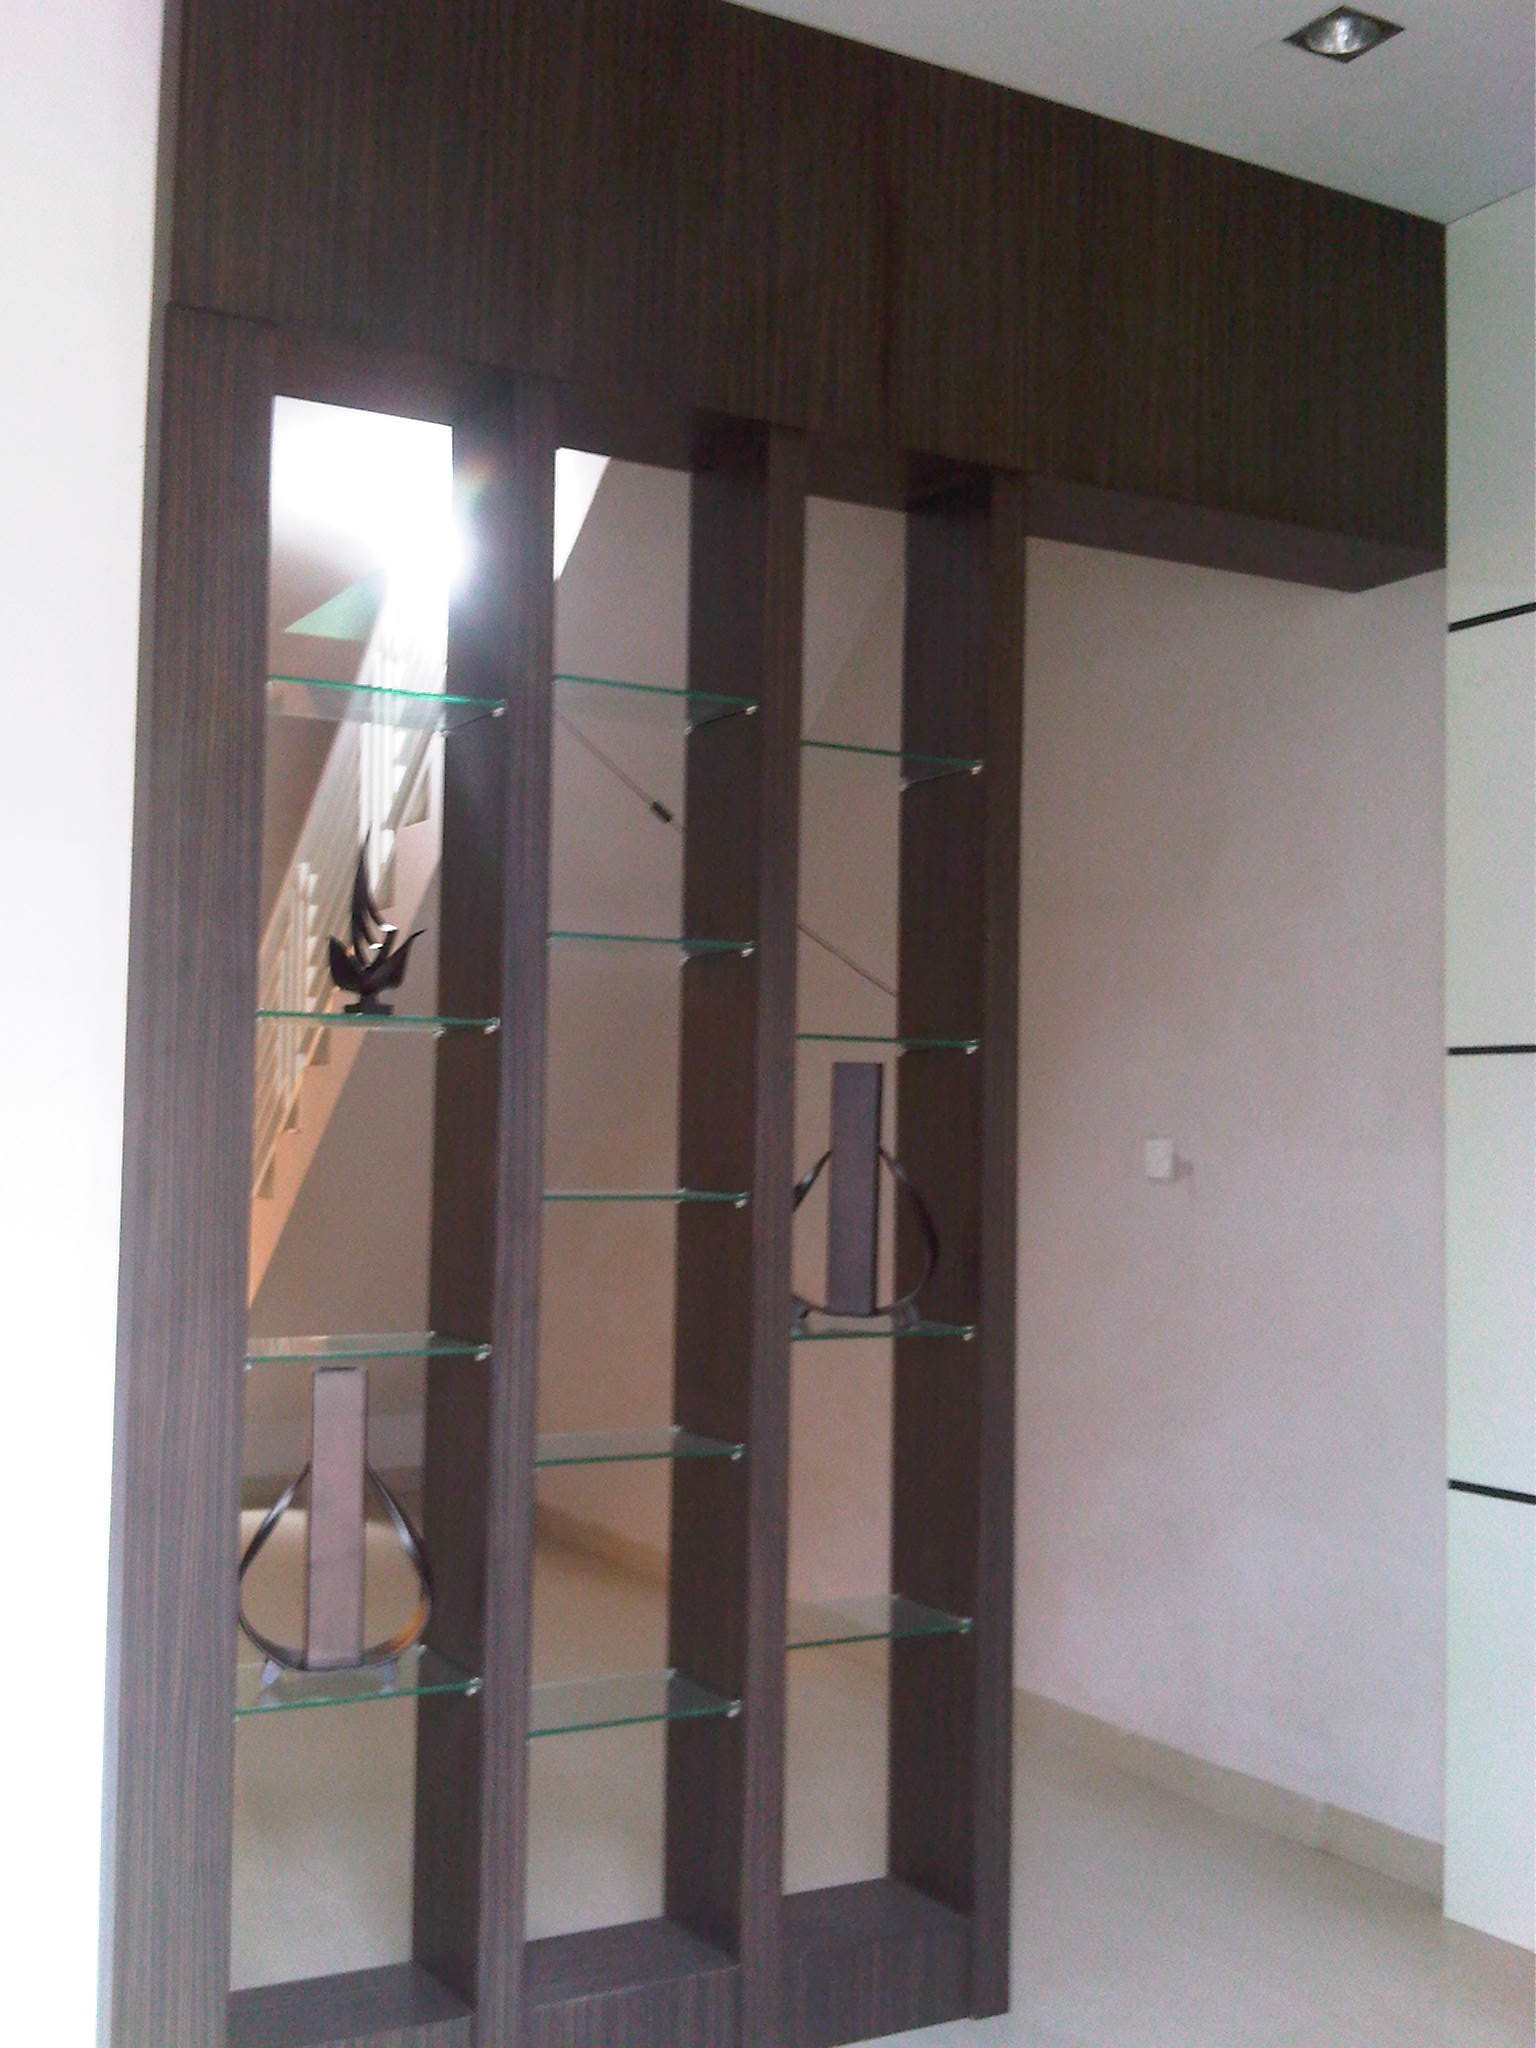 RIAUCRAFTINTERIOR 6281365082631 Menerimamembuat